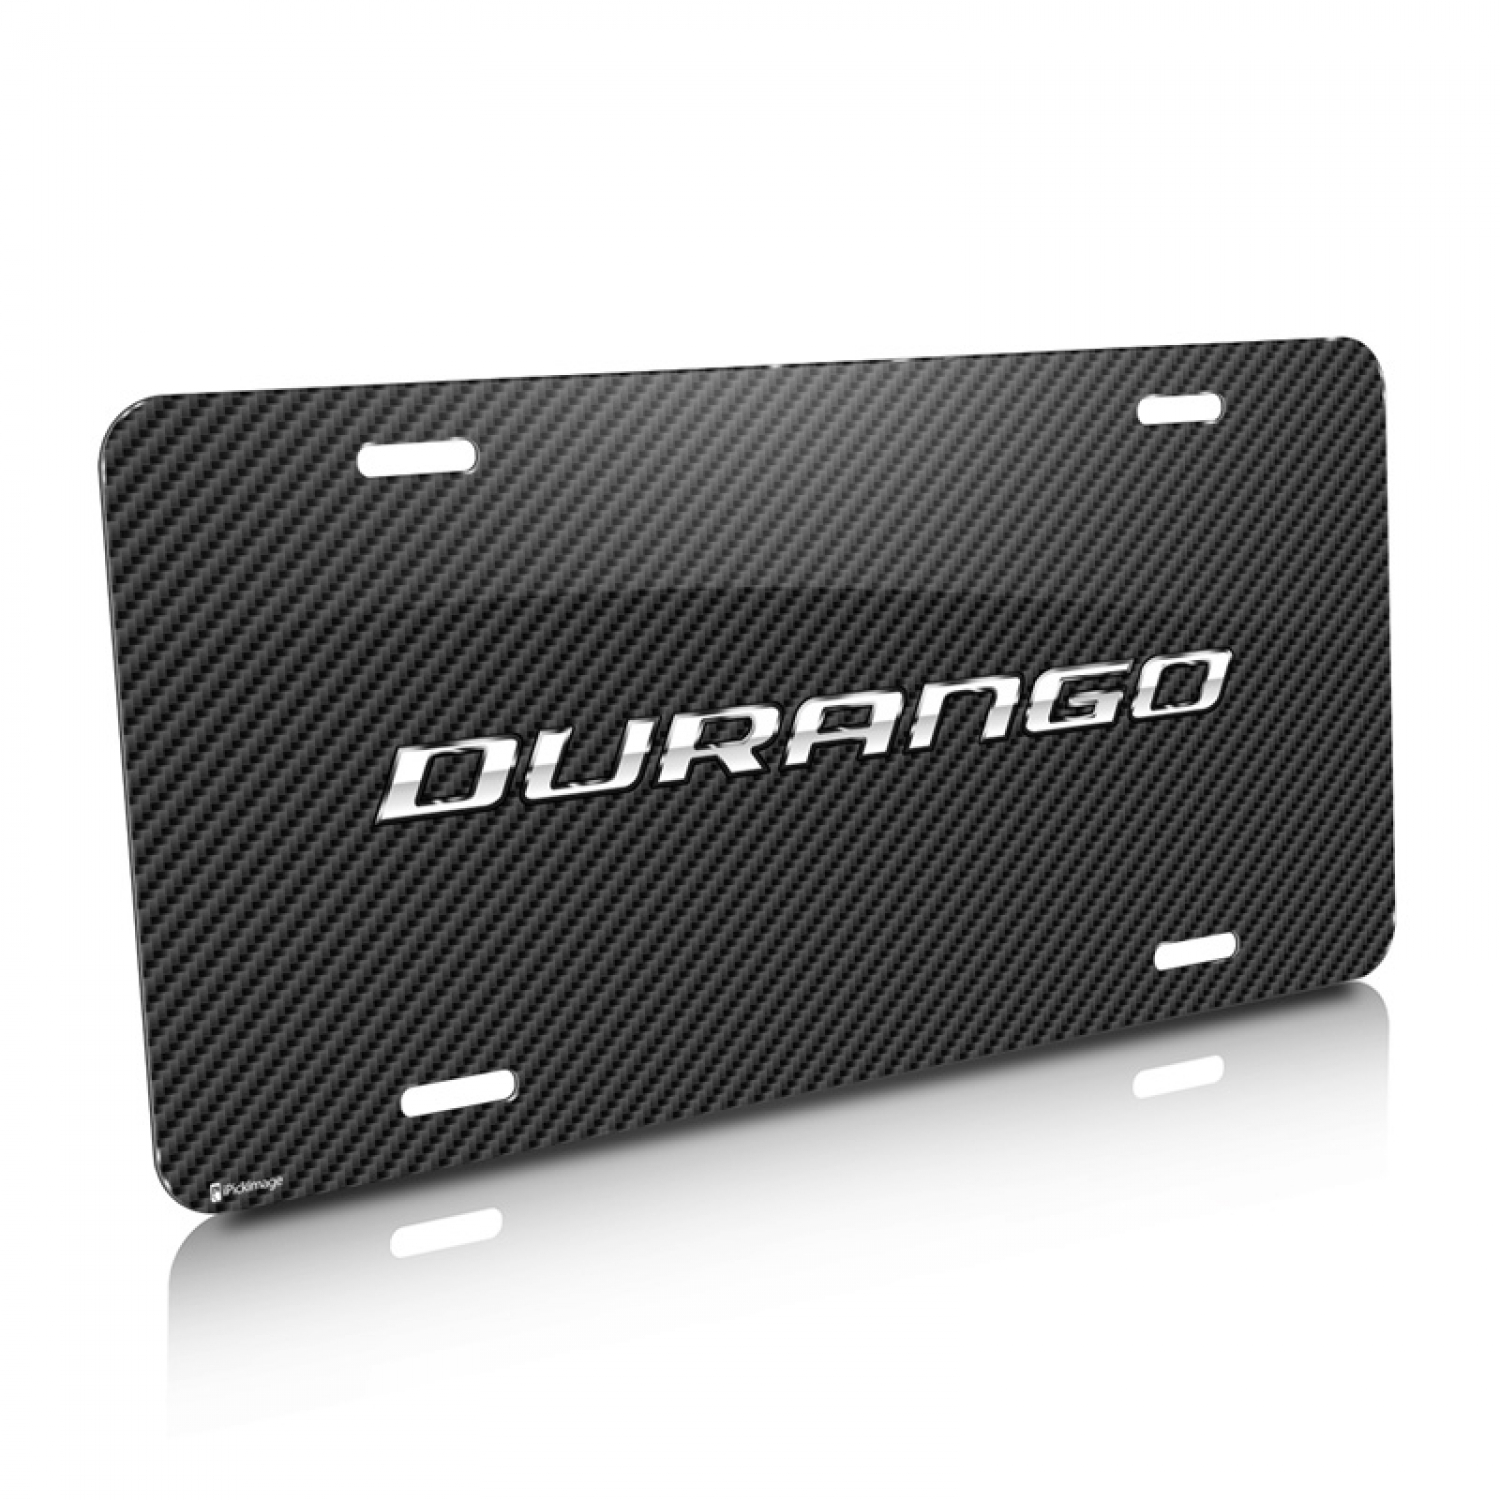 Dodge Durango Carbon Fiber Look Graphic Aluminum License Plate